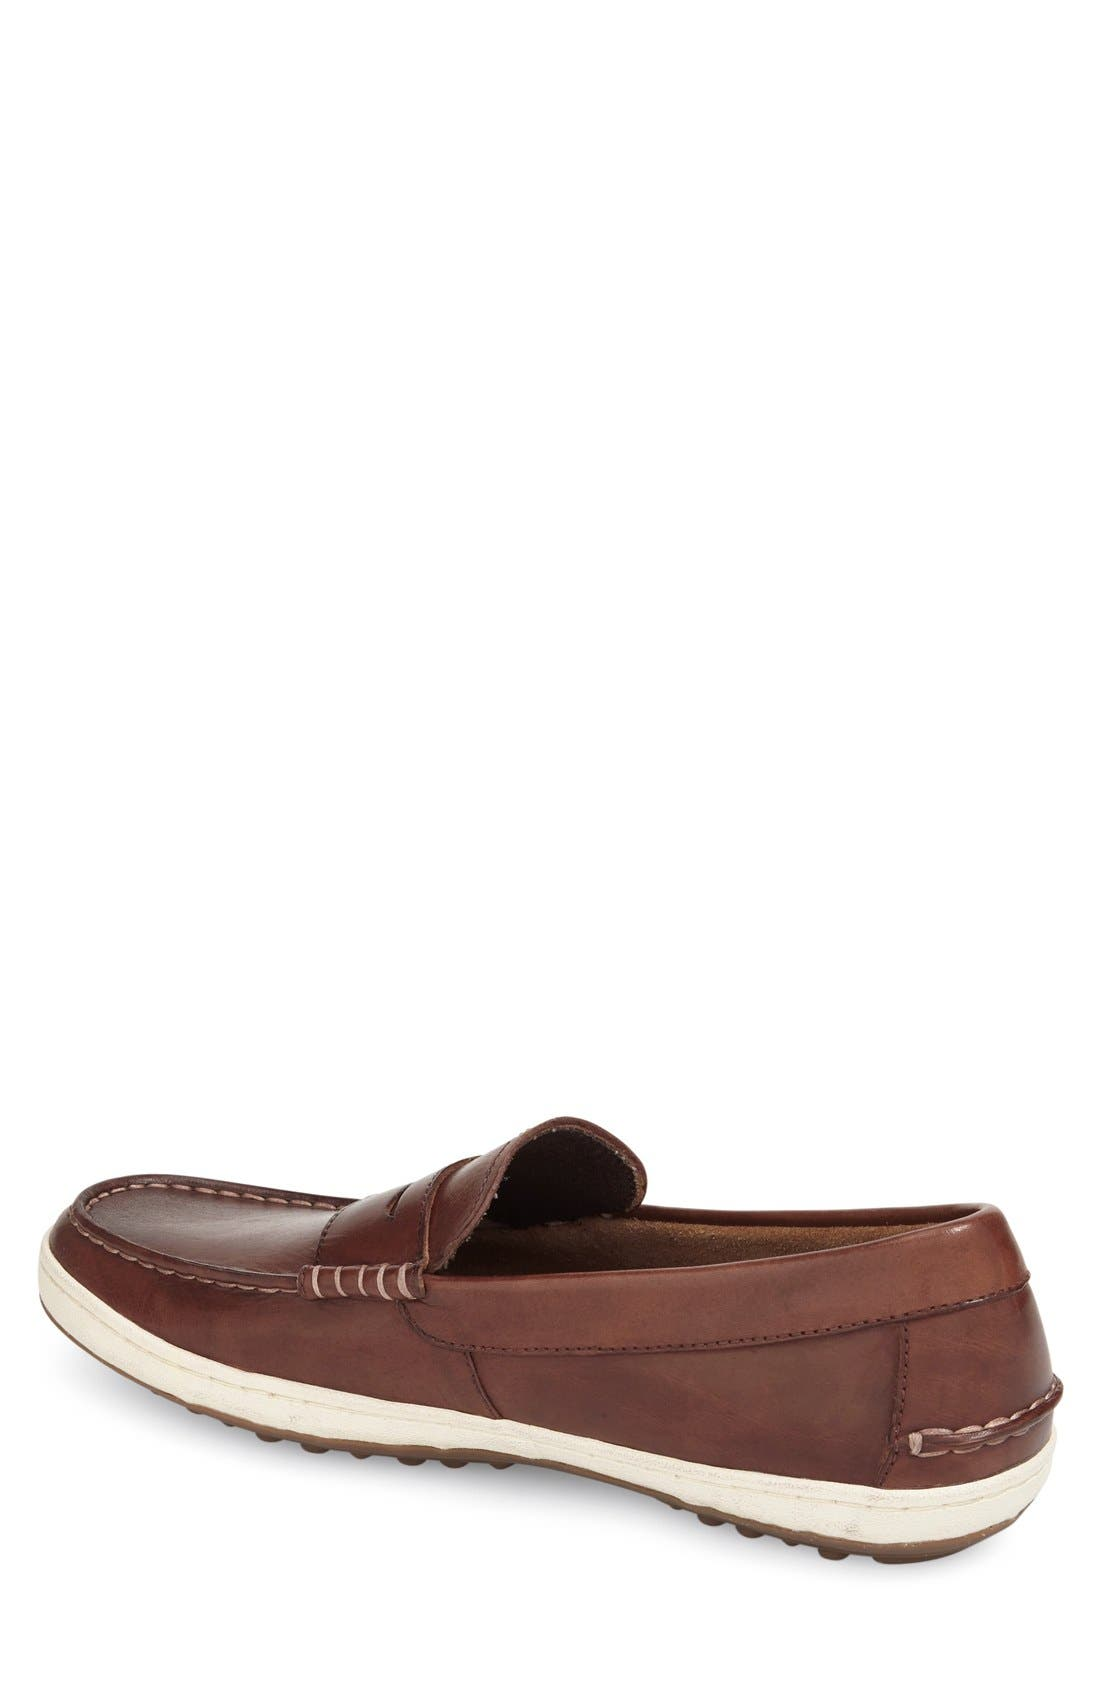 'Pinch Roadtrip' Penny Loafer,                             Alternate thumbnail 8, color,                             200